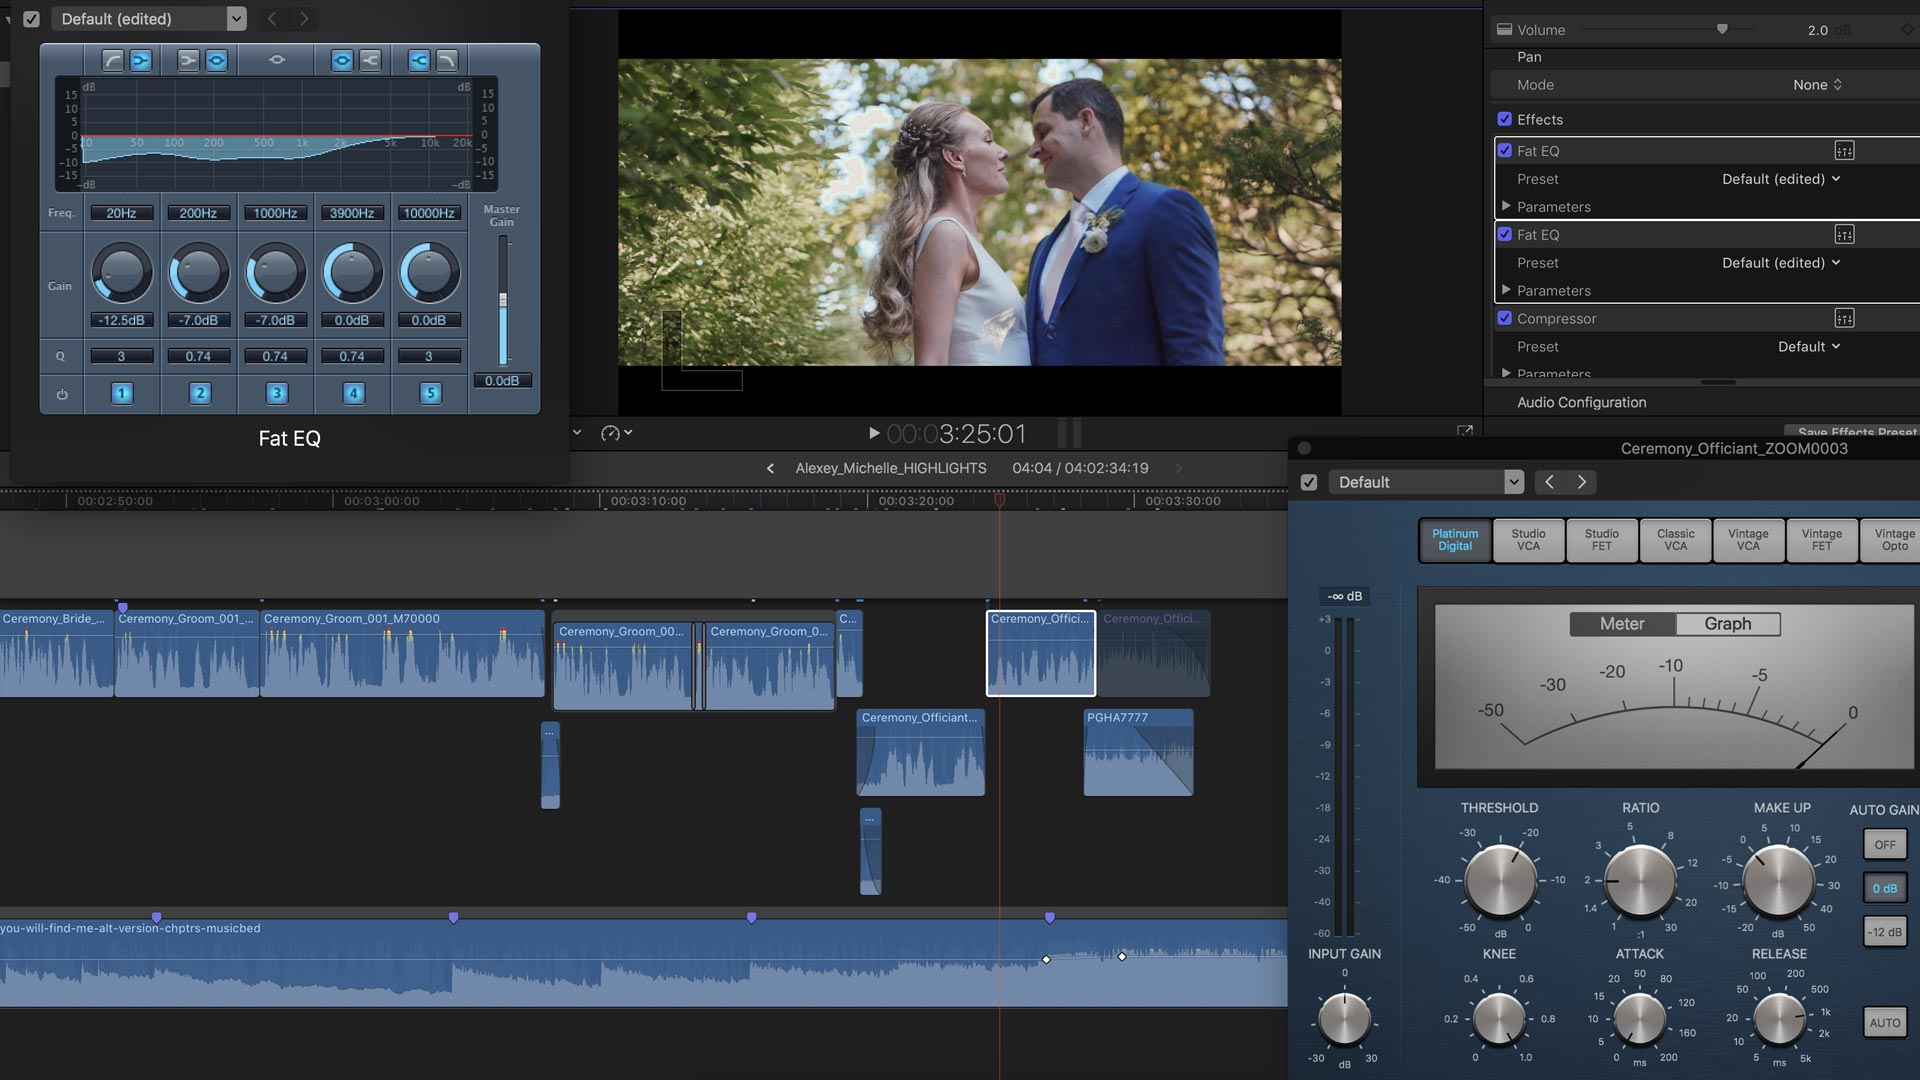 Audio Mixing in Final Cut Pro X. Show EQ and Compression being applied